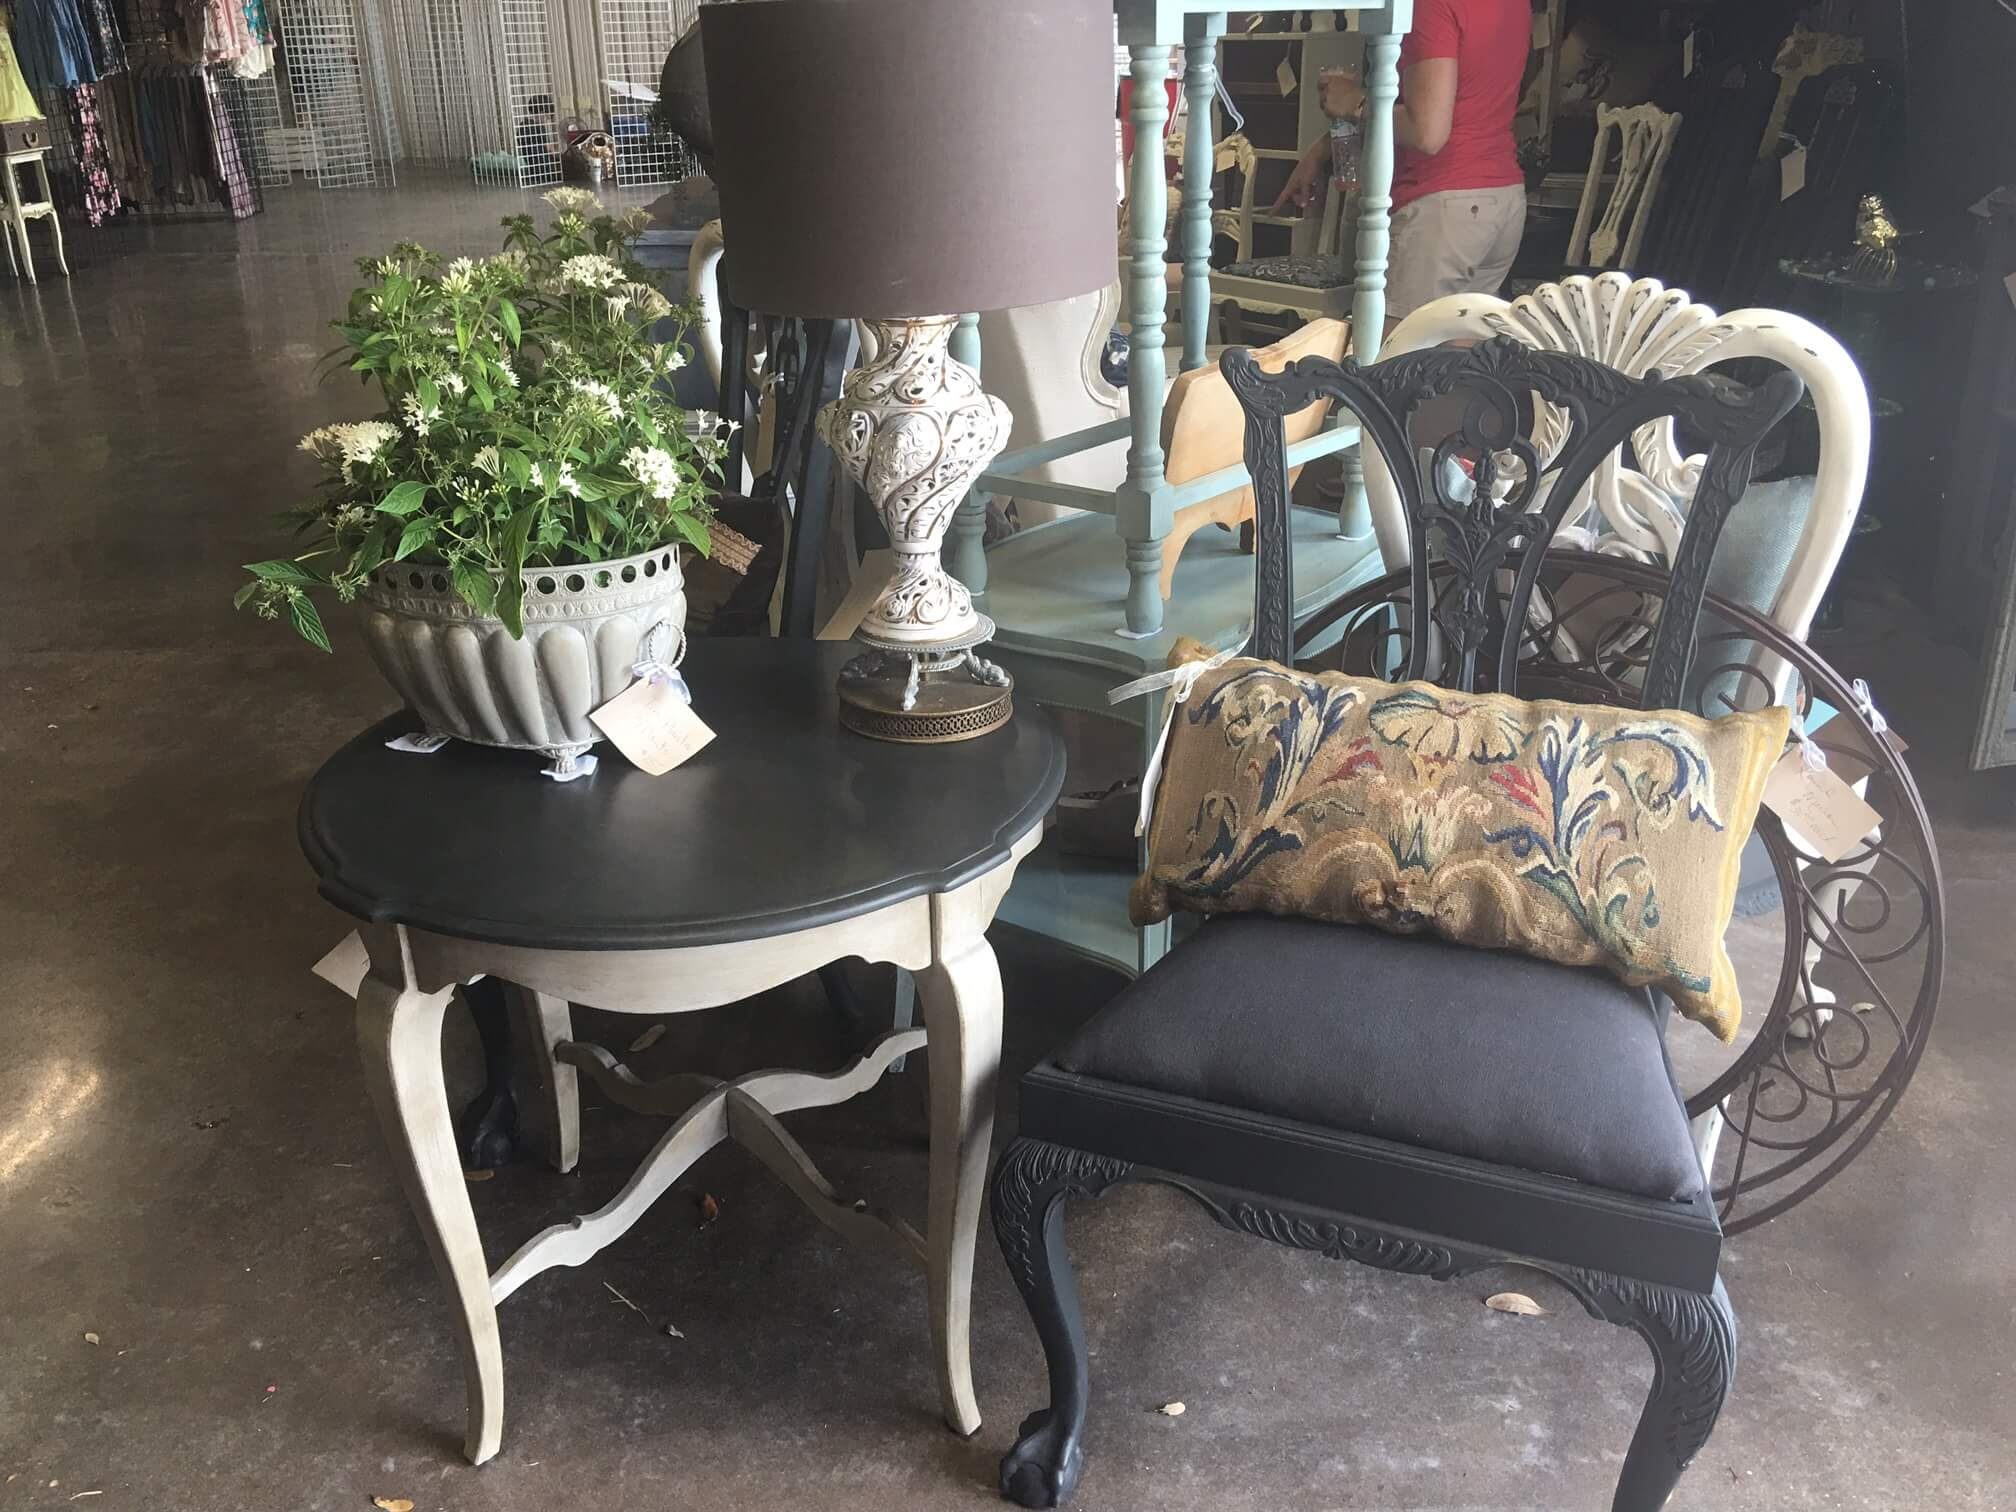 Furniture Donations Free Pick Up Free Home Design Ideas  Furniture Donation Houston Pick Up. Latest Each Year In ...